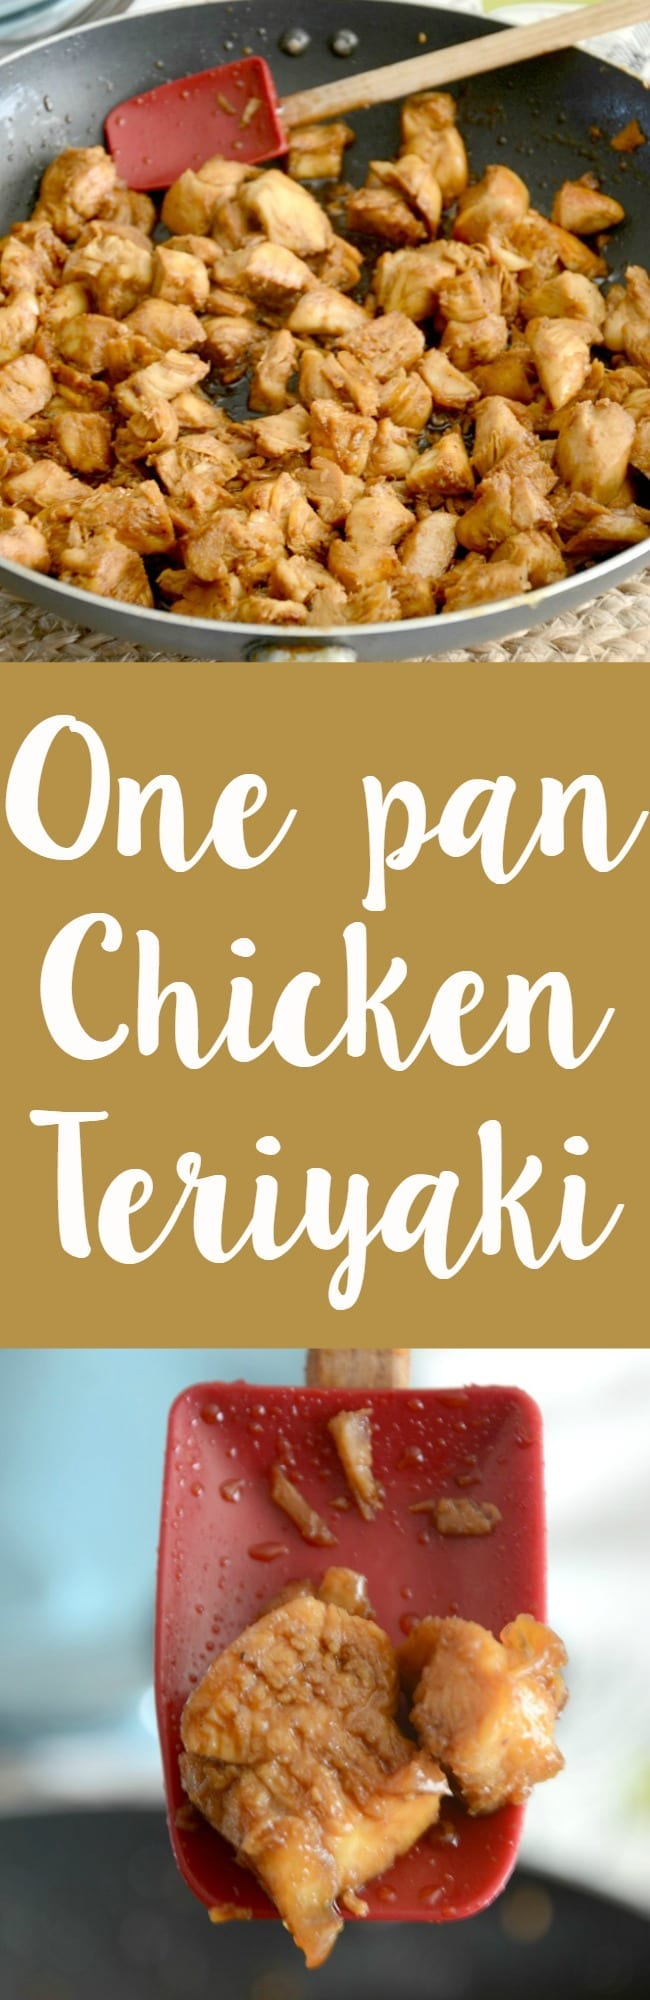 One pan chicken teriyaki recipe! This is so easy to make and perfect for a busy weeknight dinner!